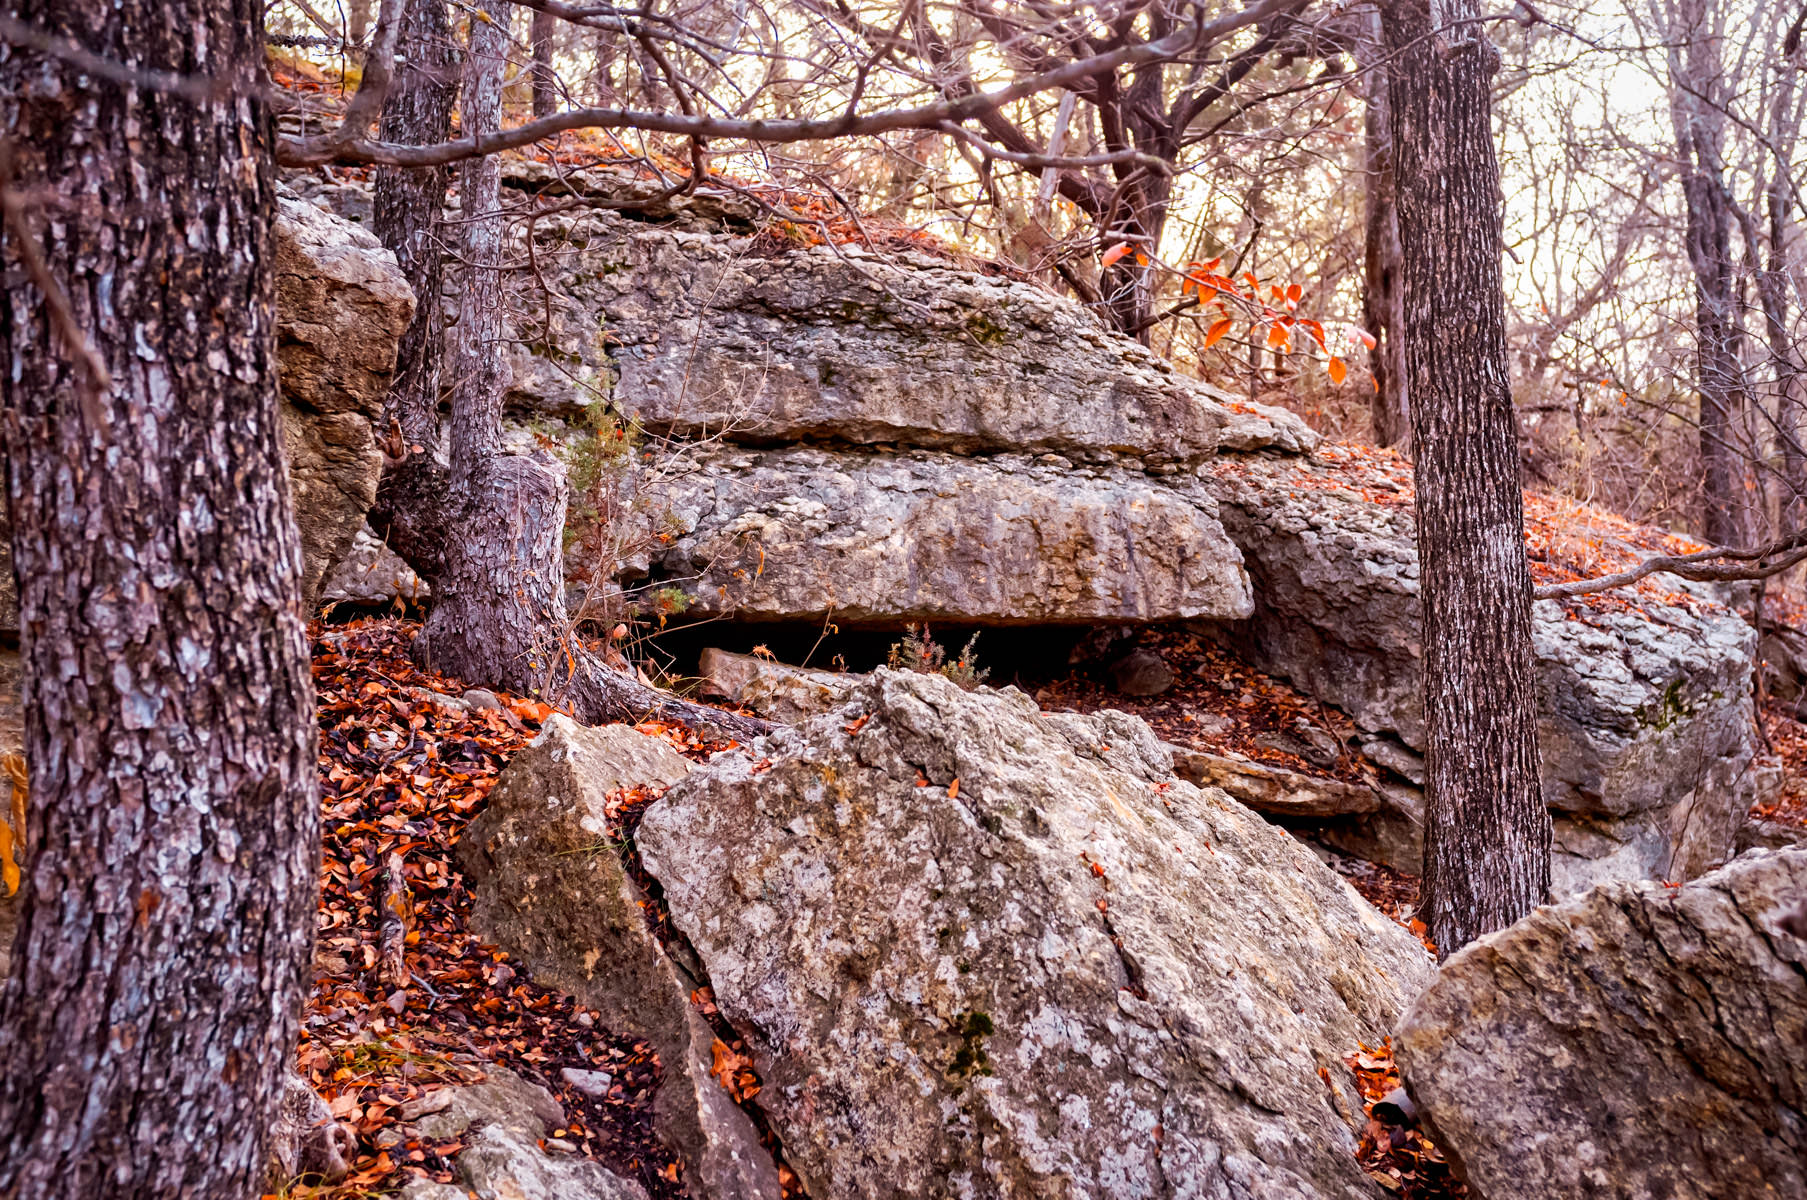 Autumn leaves scattered upon a rocky outcropping at Texas' Dinosaur Valley State Park.